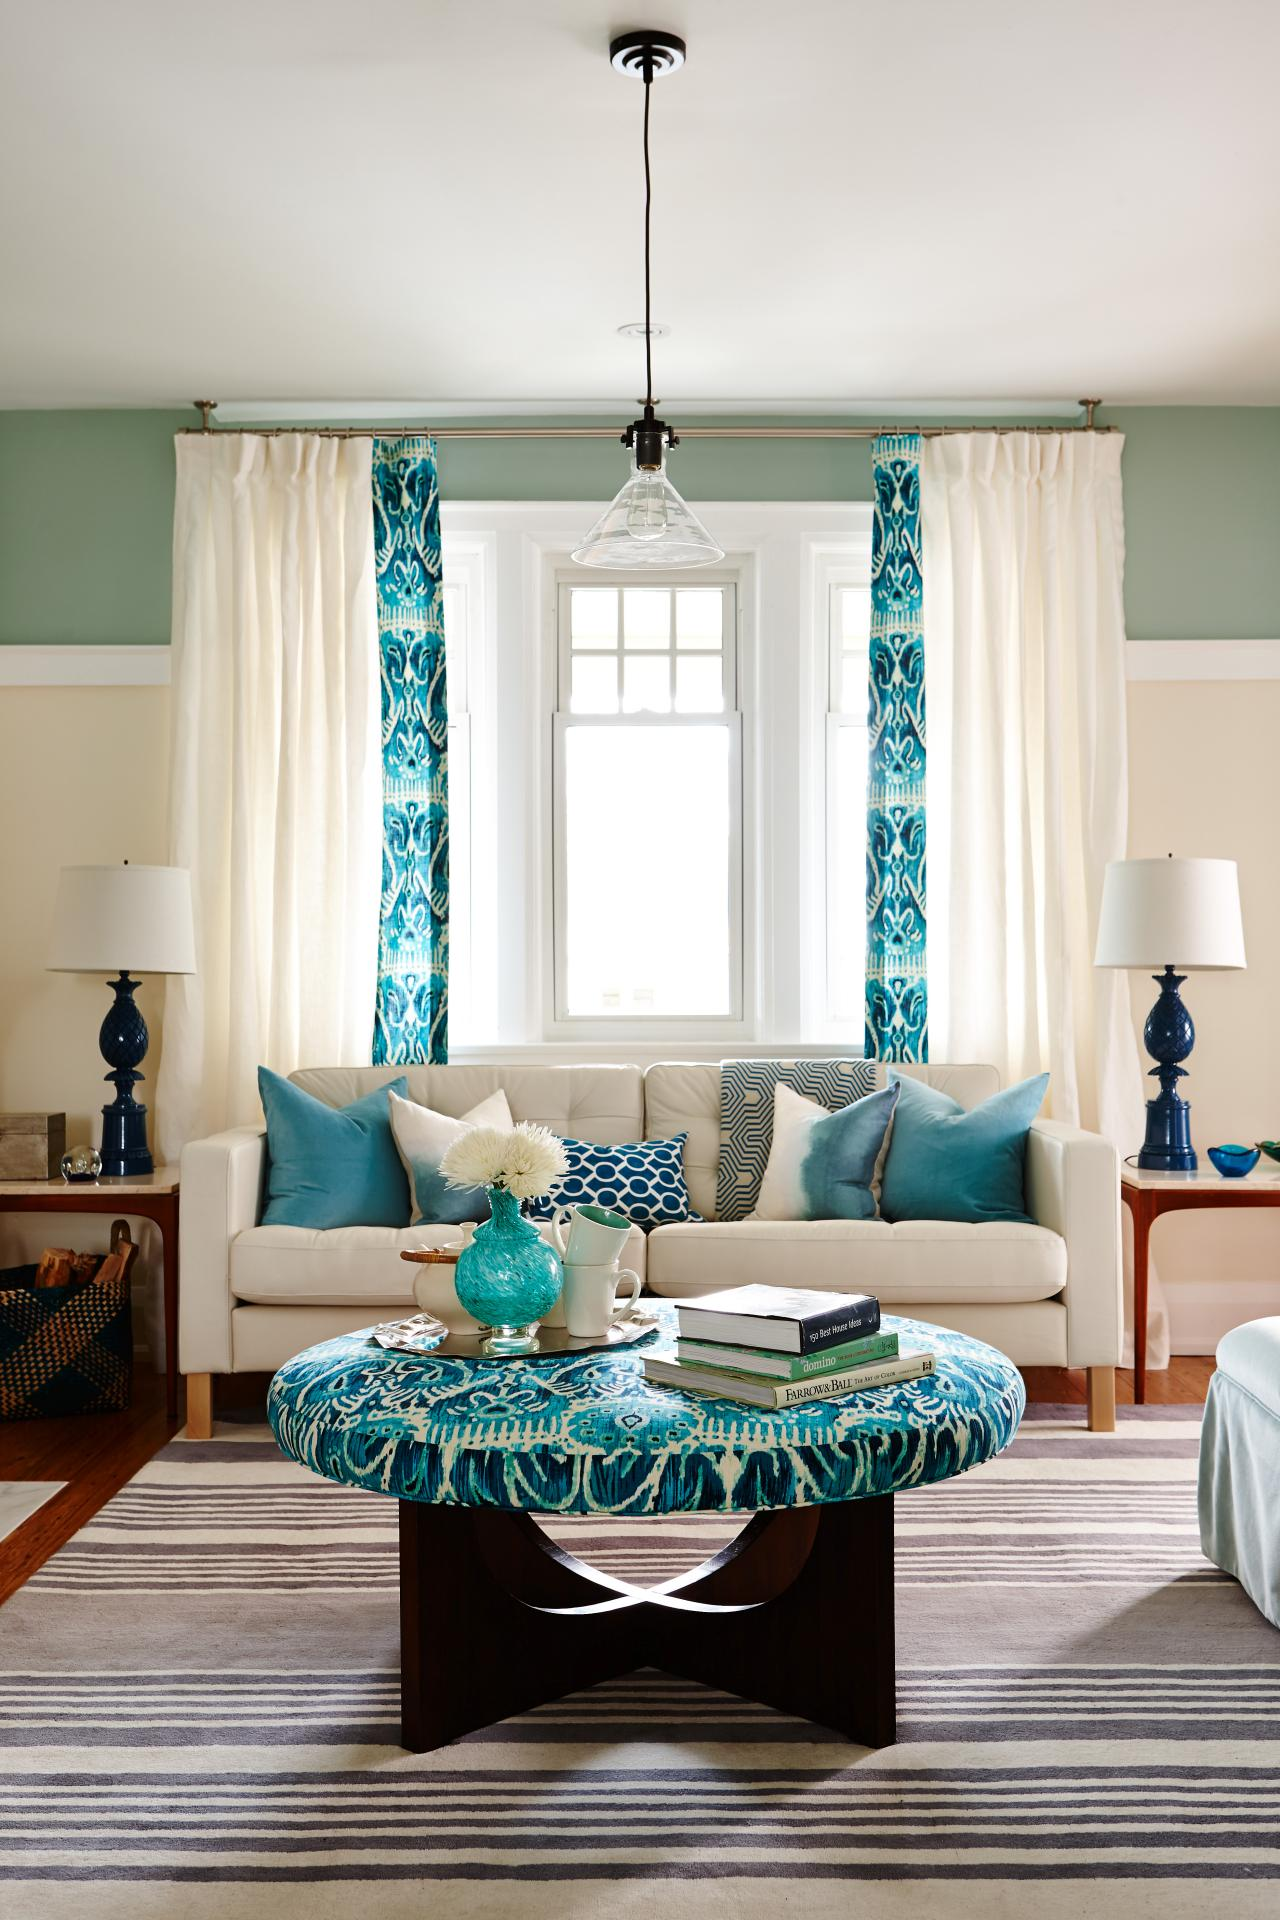 Exceptionnel Living Room With Turquoise Accents Living Room With Turquoise Accents 10  Ideas For How To Decorate